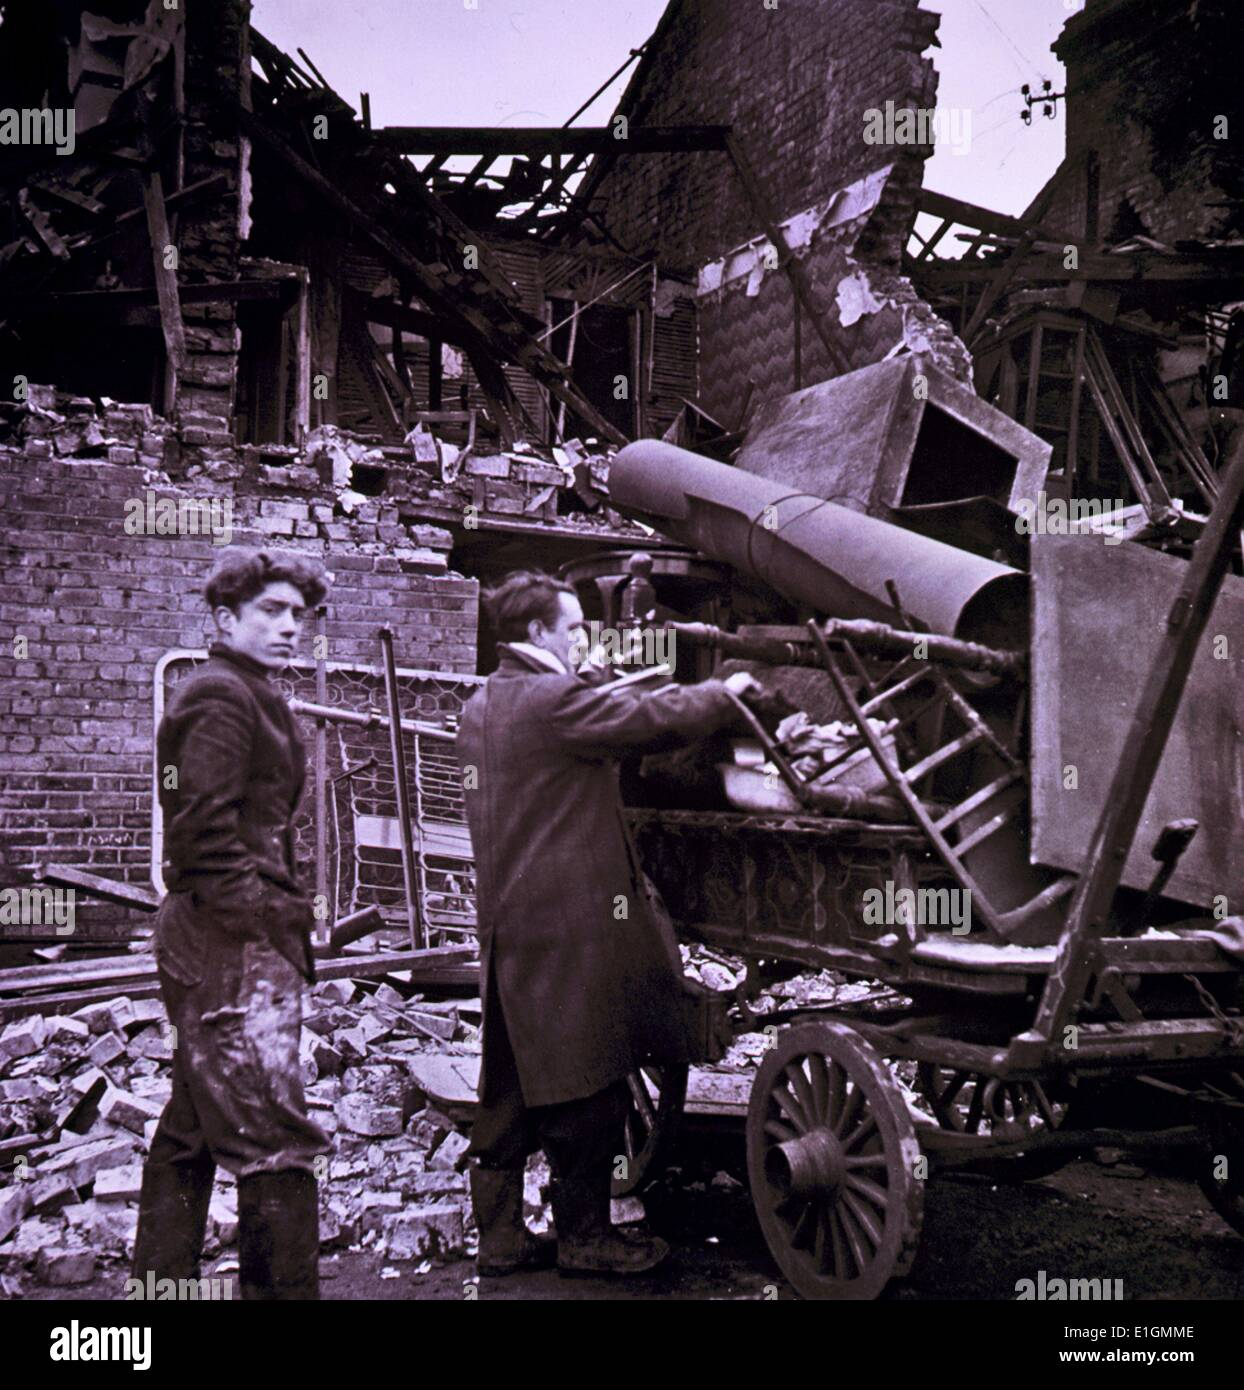 Two men load a wagon with their possessions, among ruins. - Stock Image